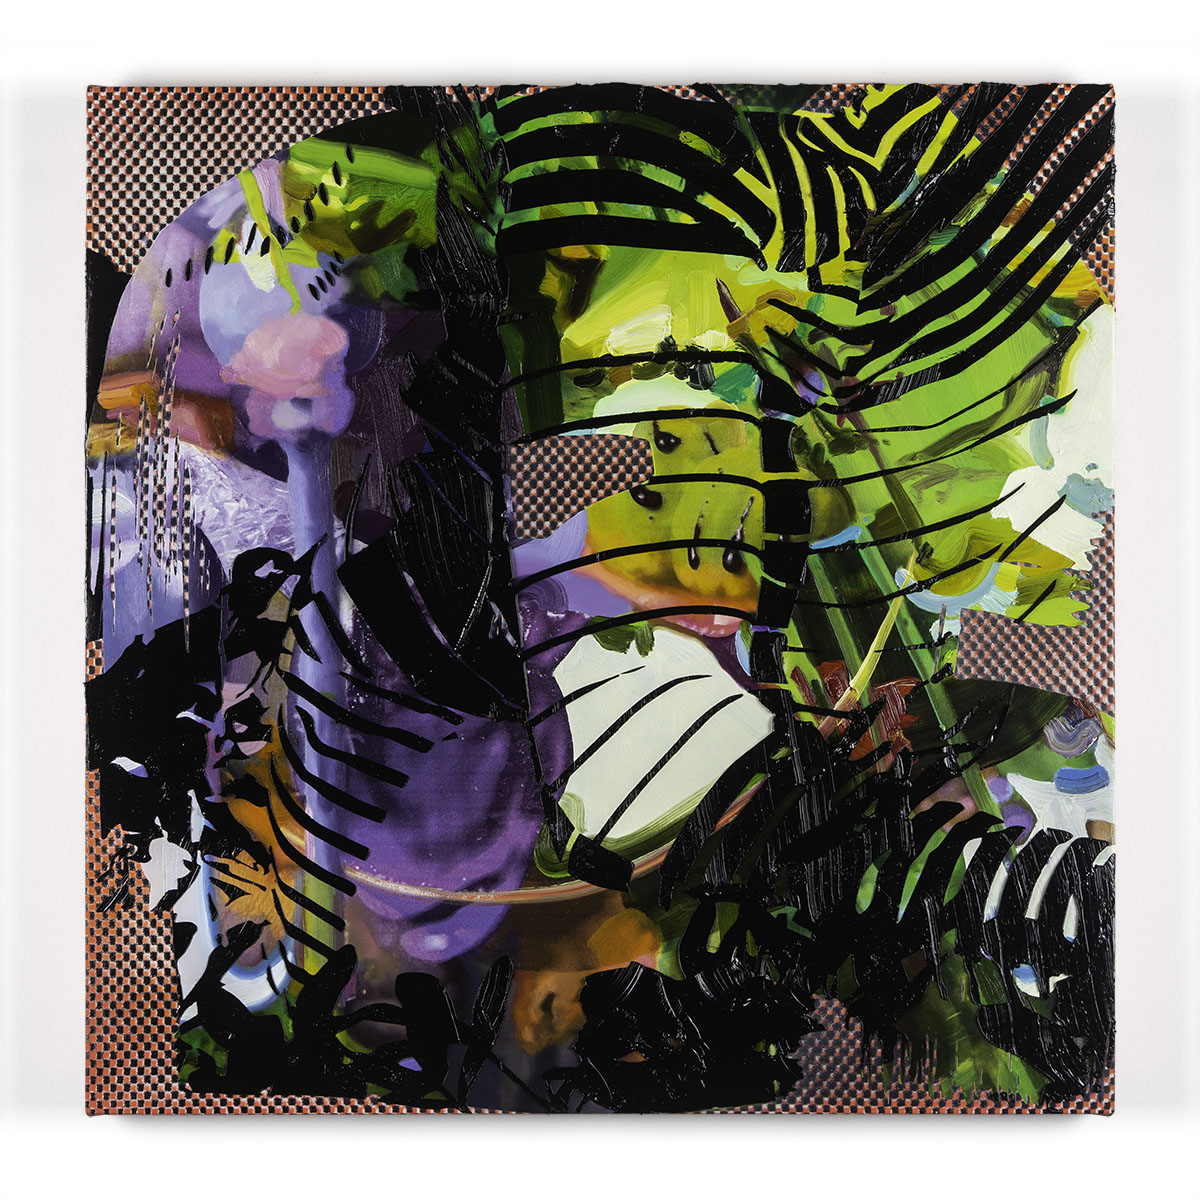 Jimmy Baker, American artist, painting, digital printing : Politics of Gardening 3 painting